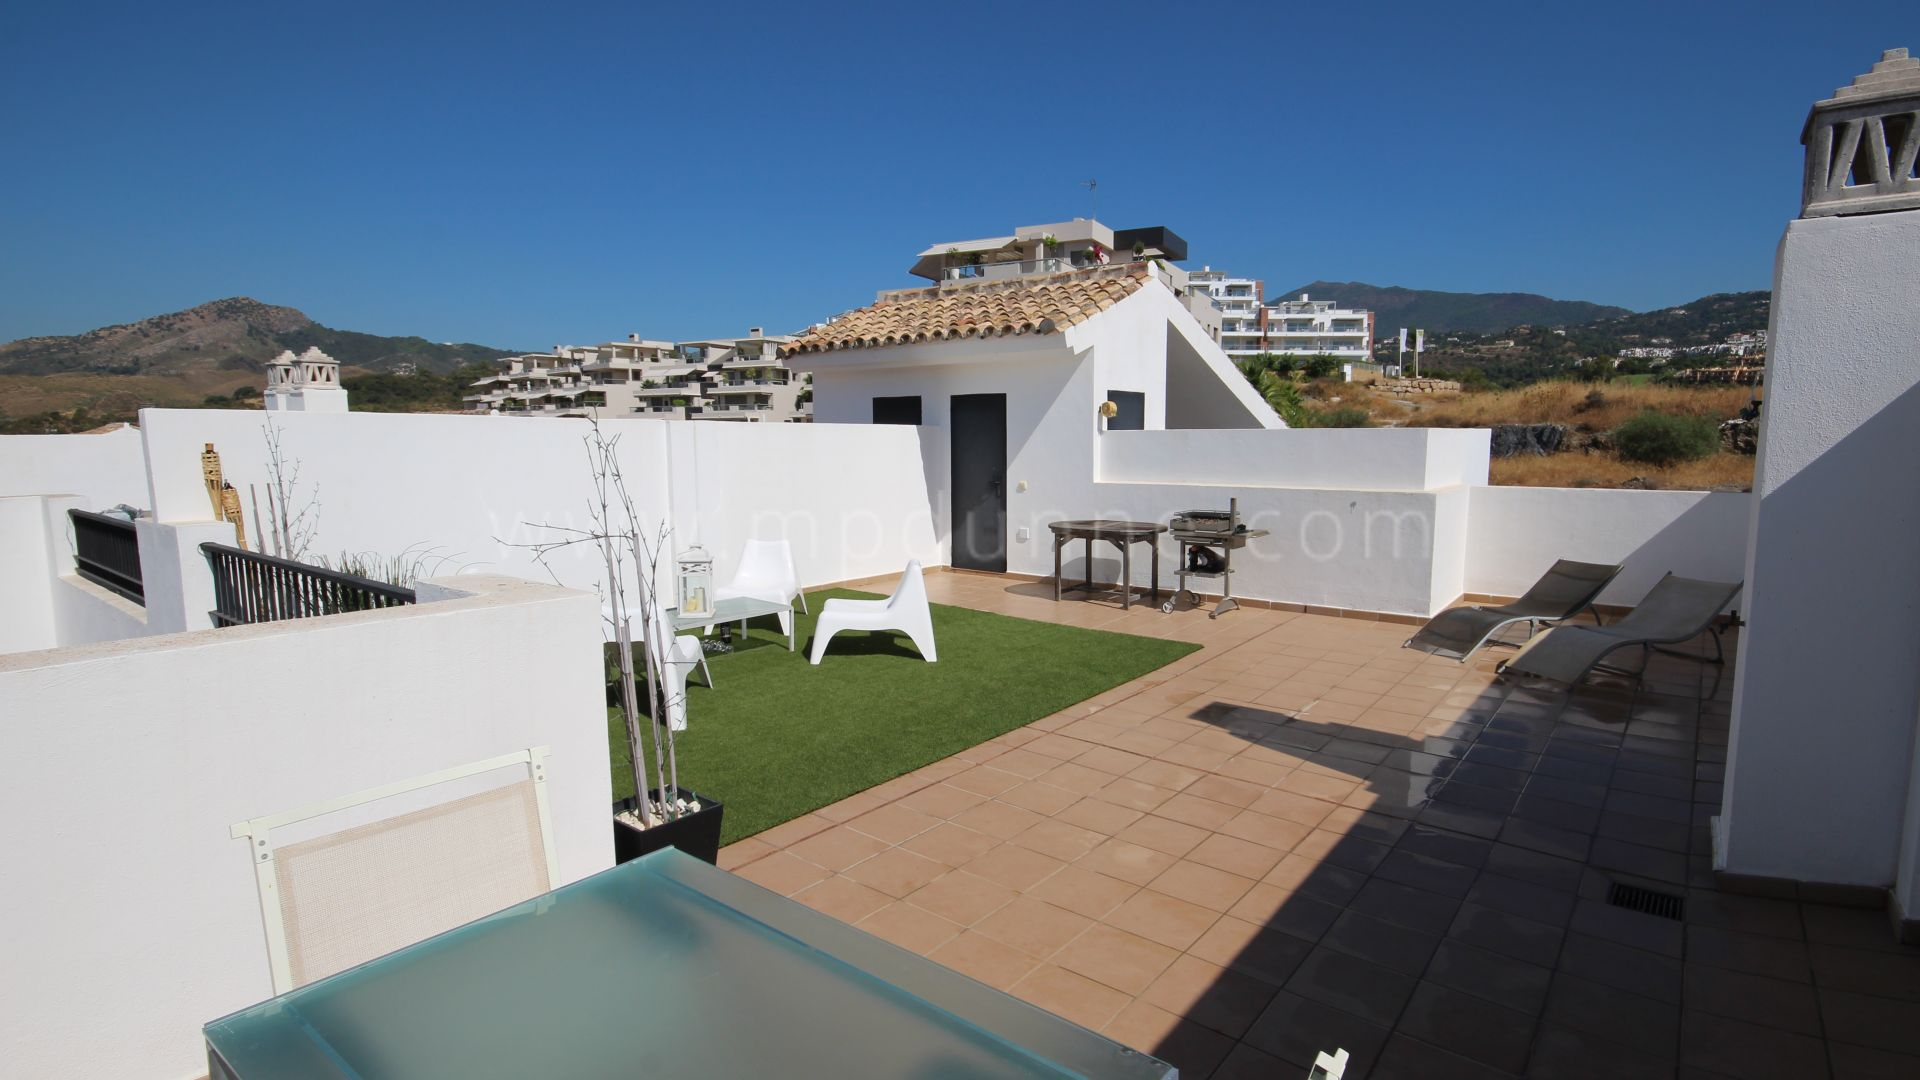 2 Bed 2 Bath Penthouse in Los Arqueros Golf & Country Club